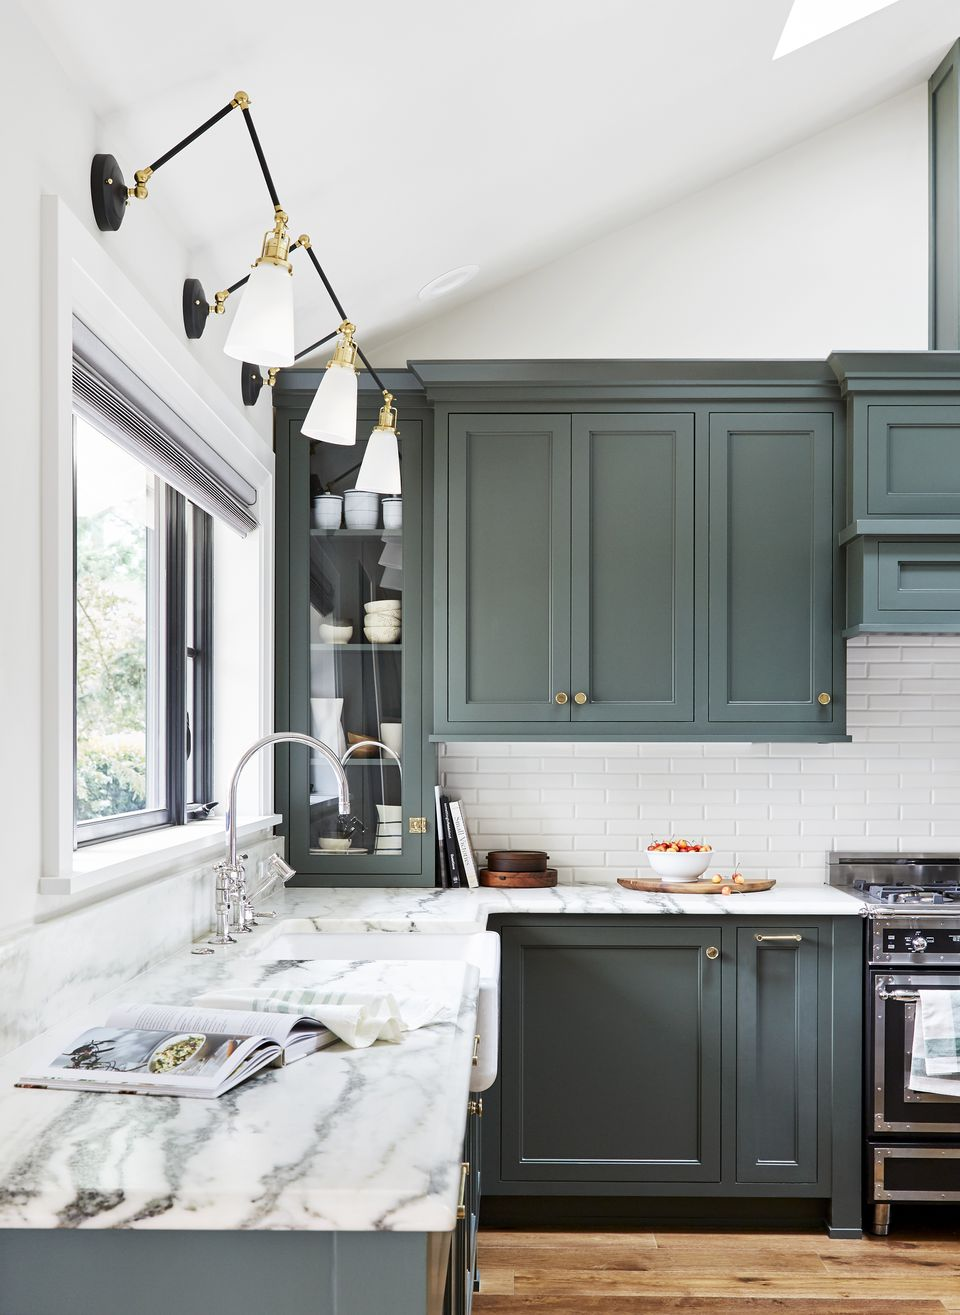 Kitchen in pewter green